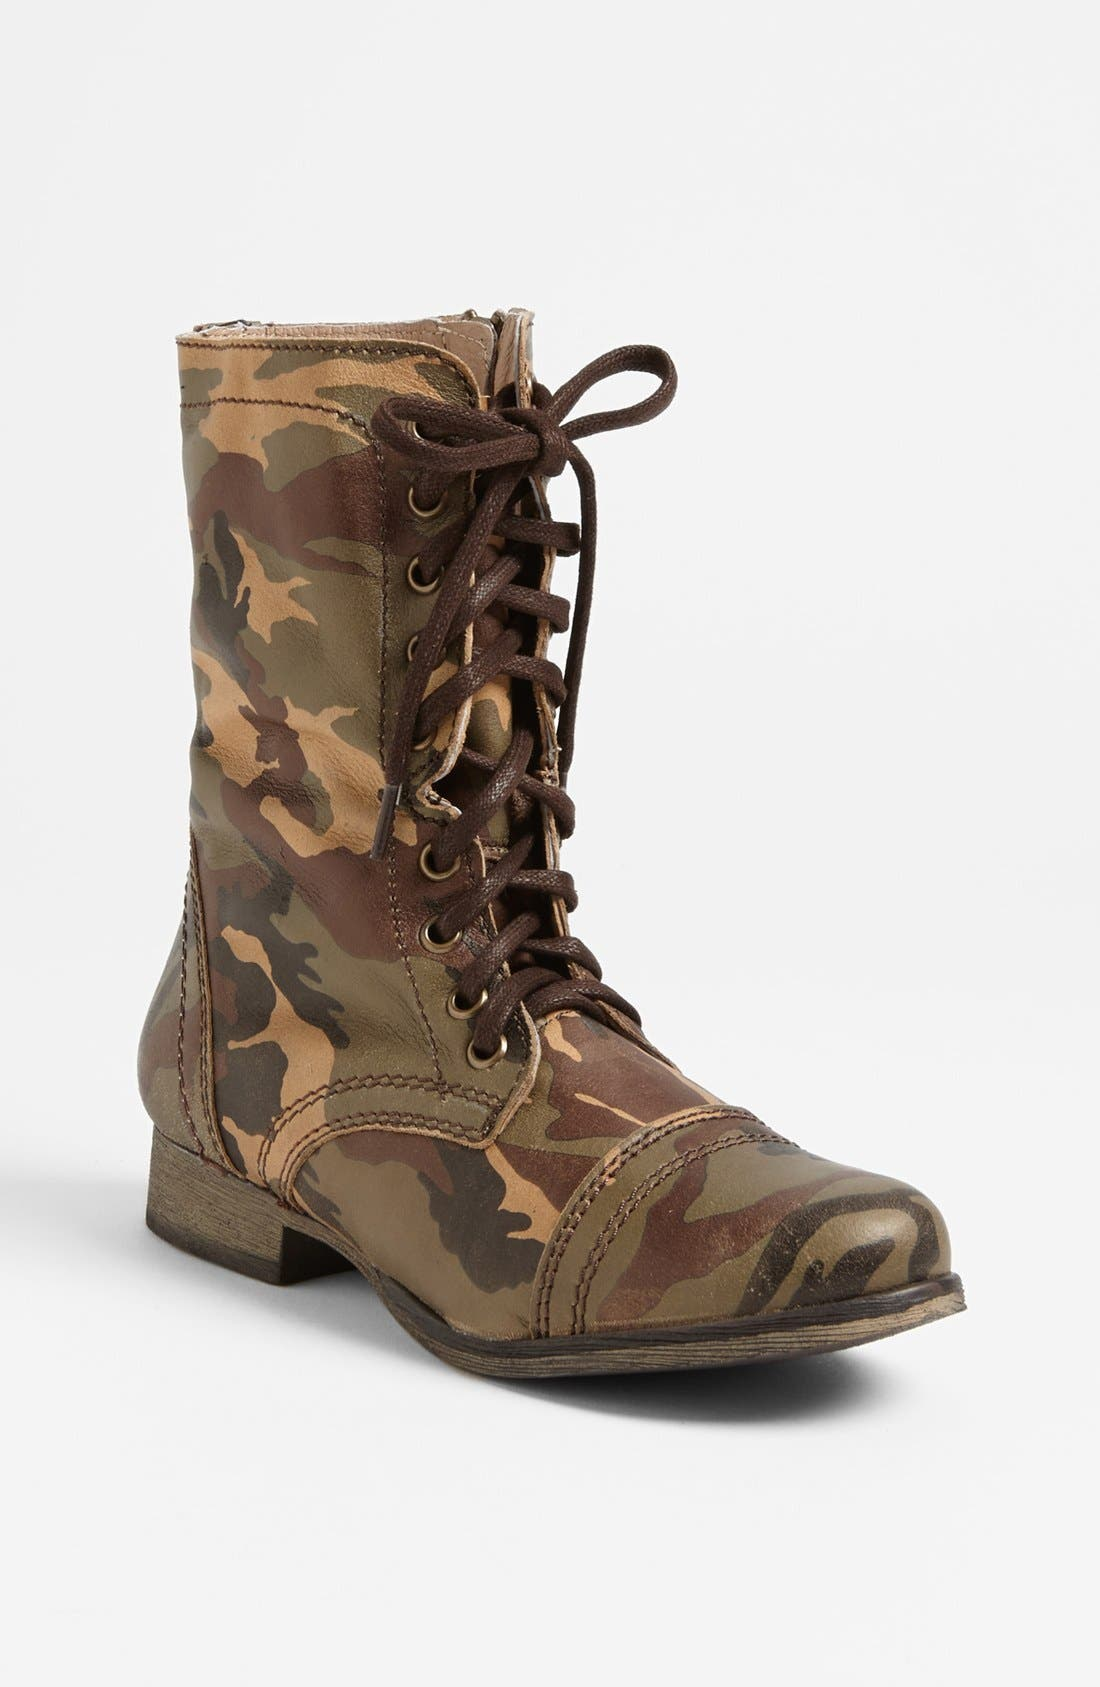 Alternate Image 1 Selected - Steve Madden 'Troopa - Limited Edition' Boot